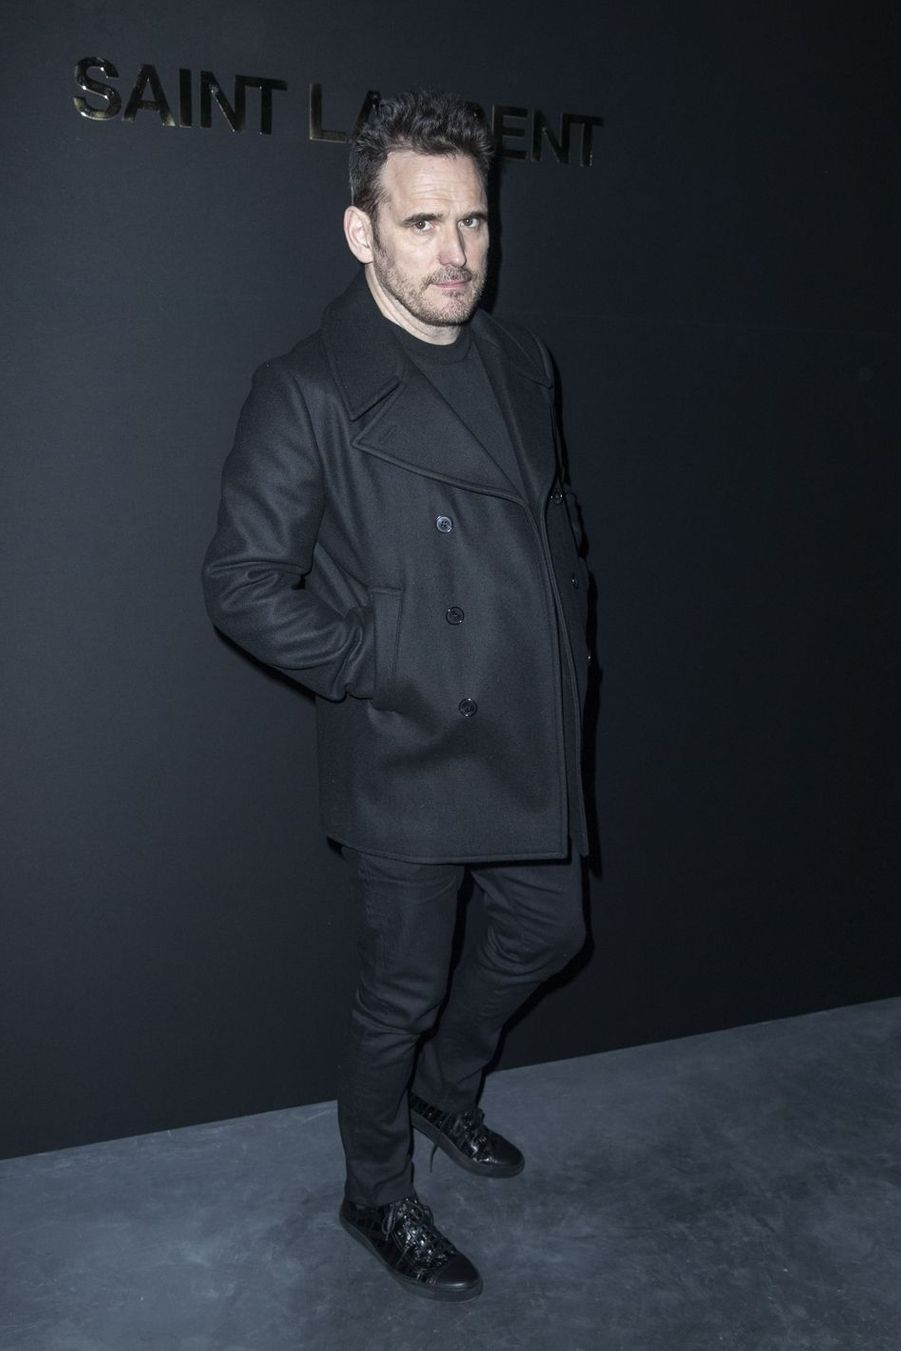 Matt Dillon au défilé Saint Laurent lors de la Fashion Week de Paris le 26 février 2019